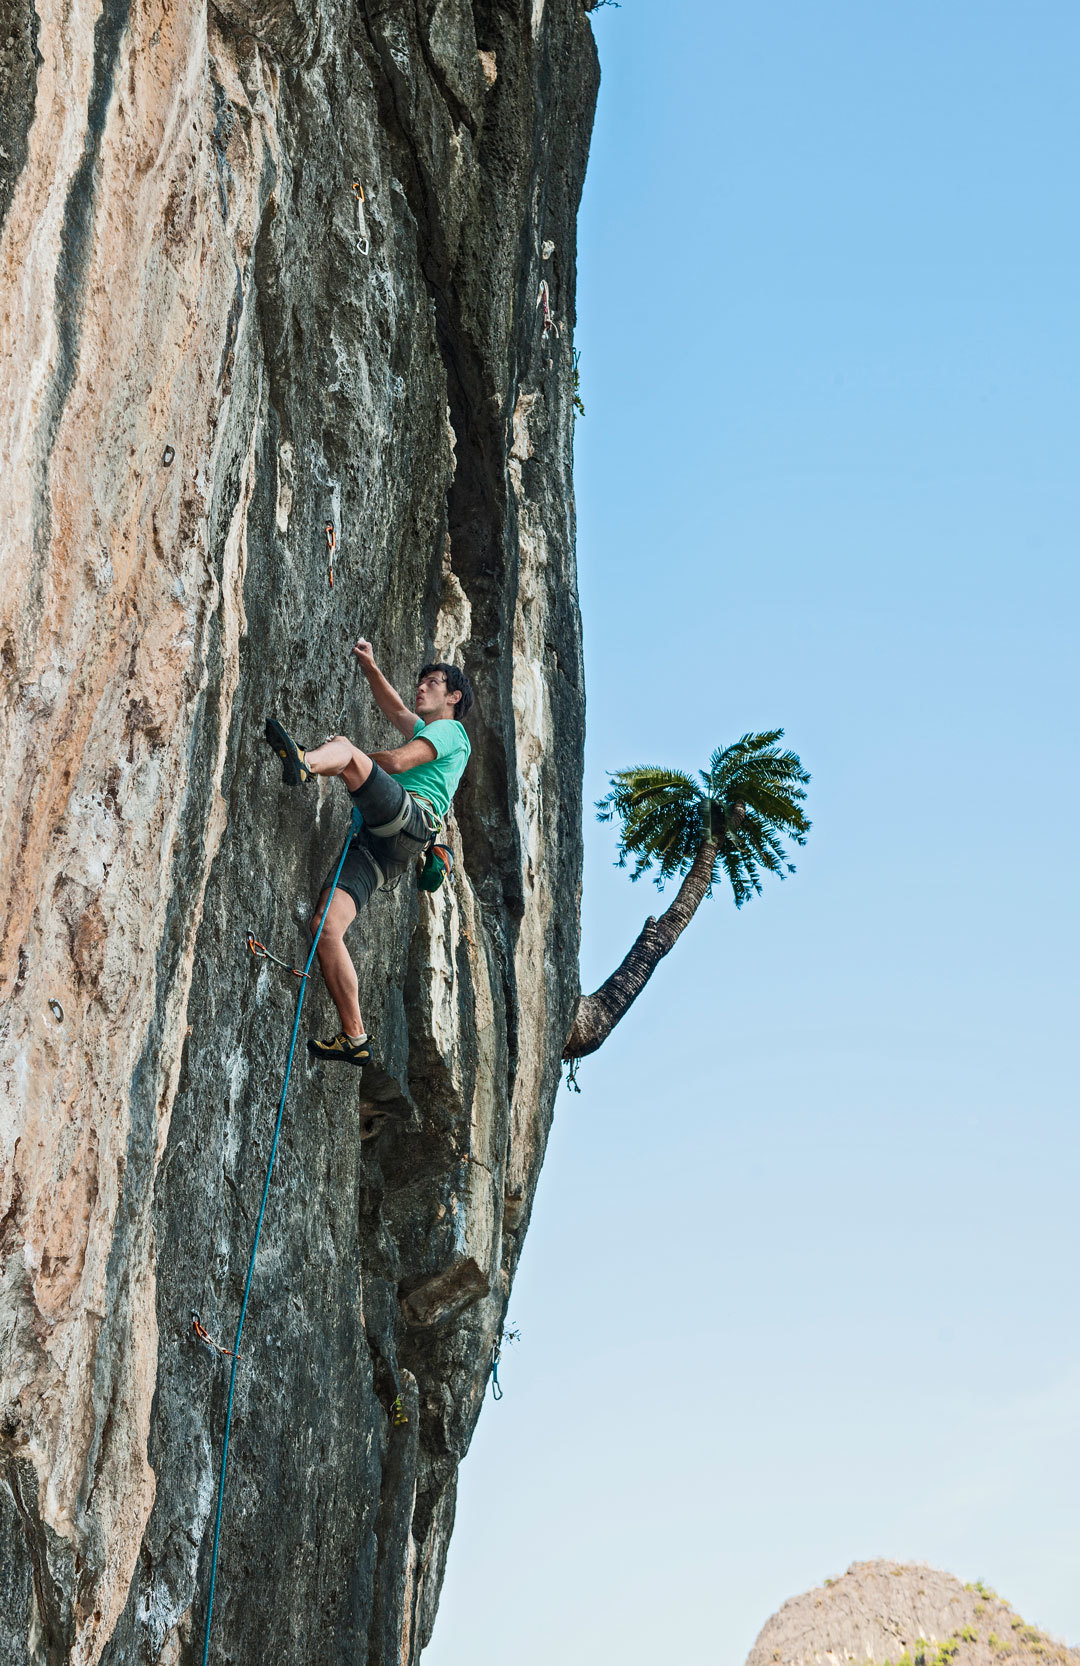 Tim Choate, Work, Life, Balance 7b  Photo: Thorsten Henn